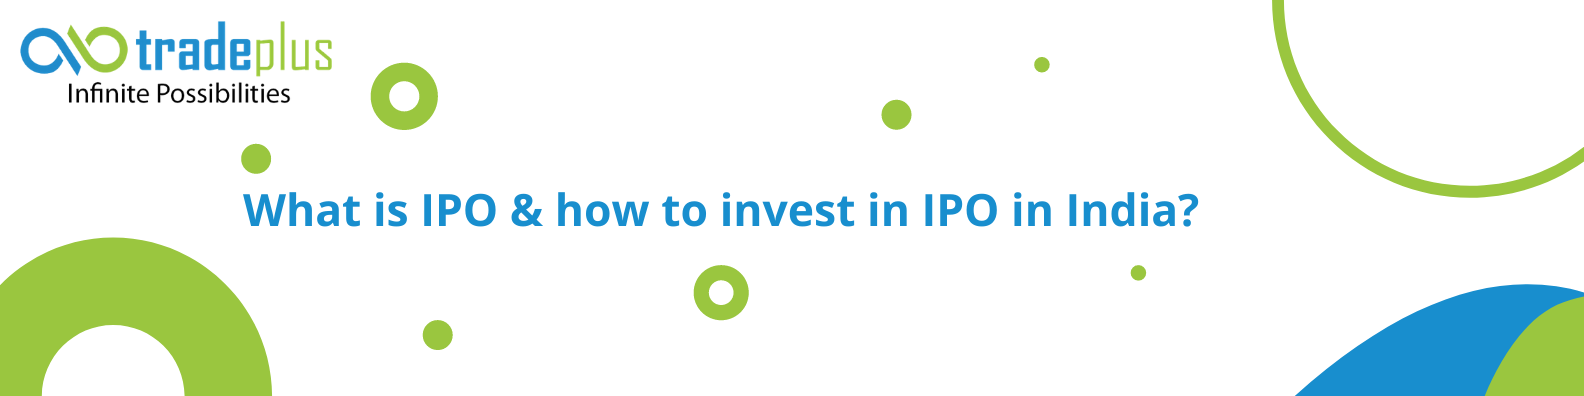 Blue and Yellow Technology LinkedIn Banner 8 What is IPO & how to invest in IPO in India?